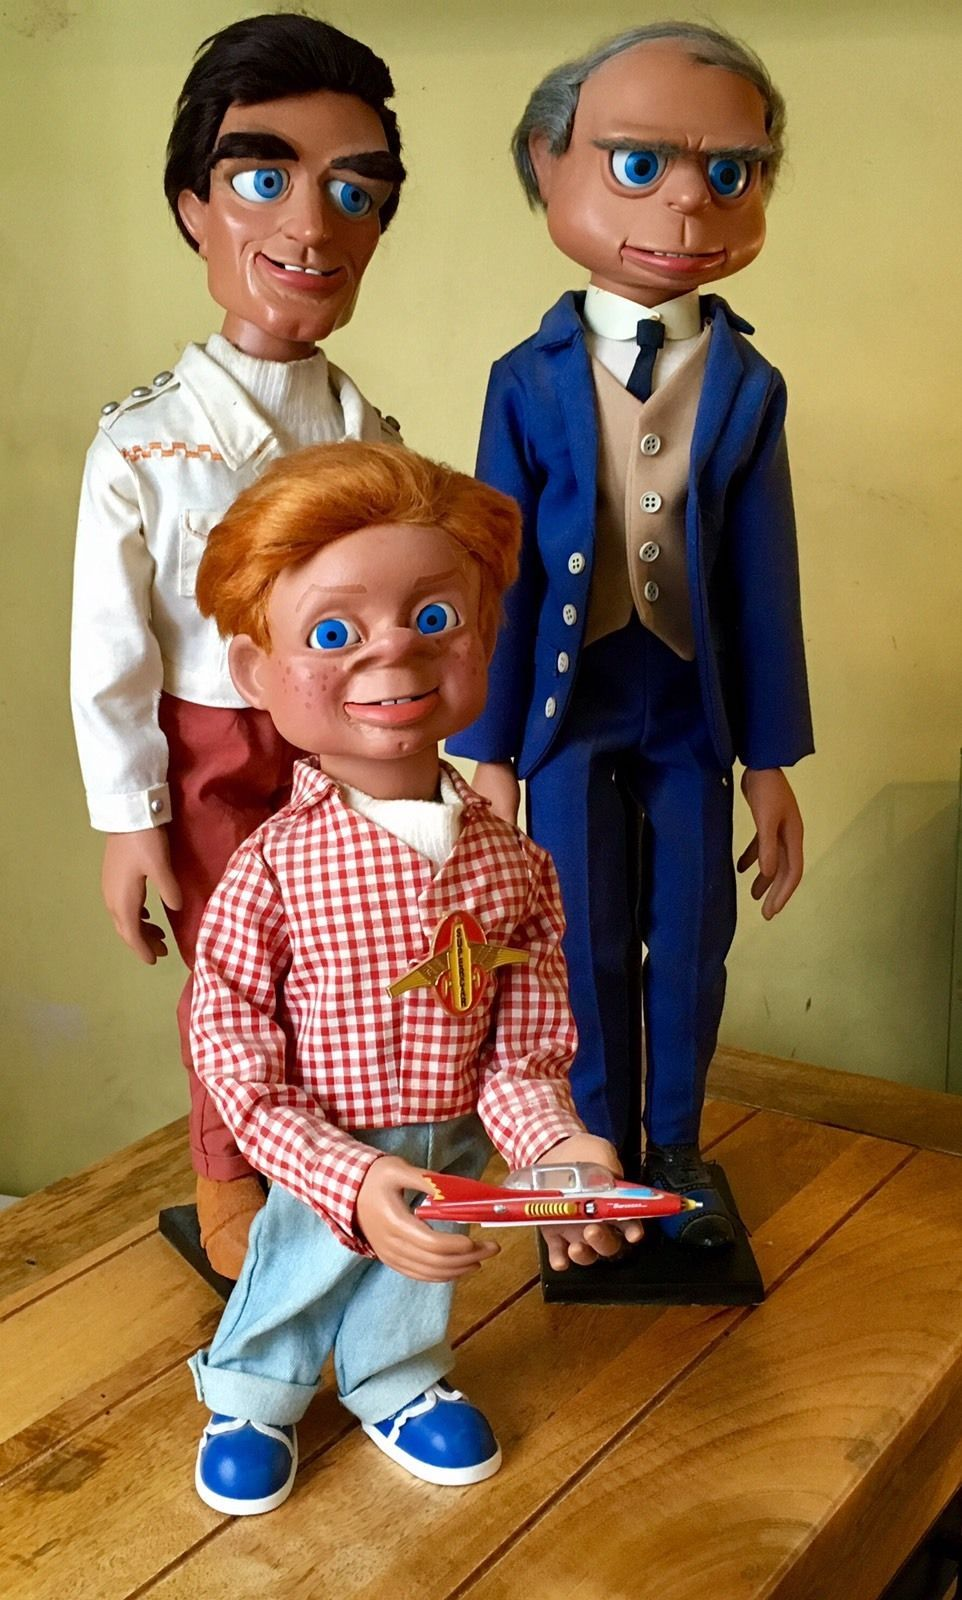 Details About Gerry Anderson Puppets Supercar Tv Show Supermarionation Marionette Jimmy 1960s Toys Super Cars Puppets Tv Shows